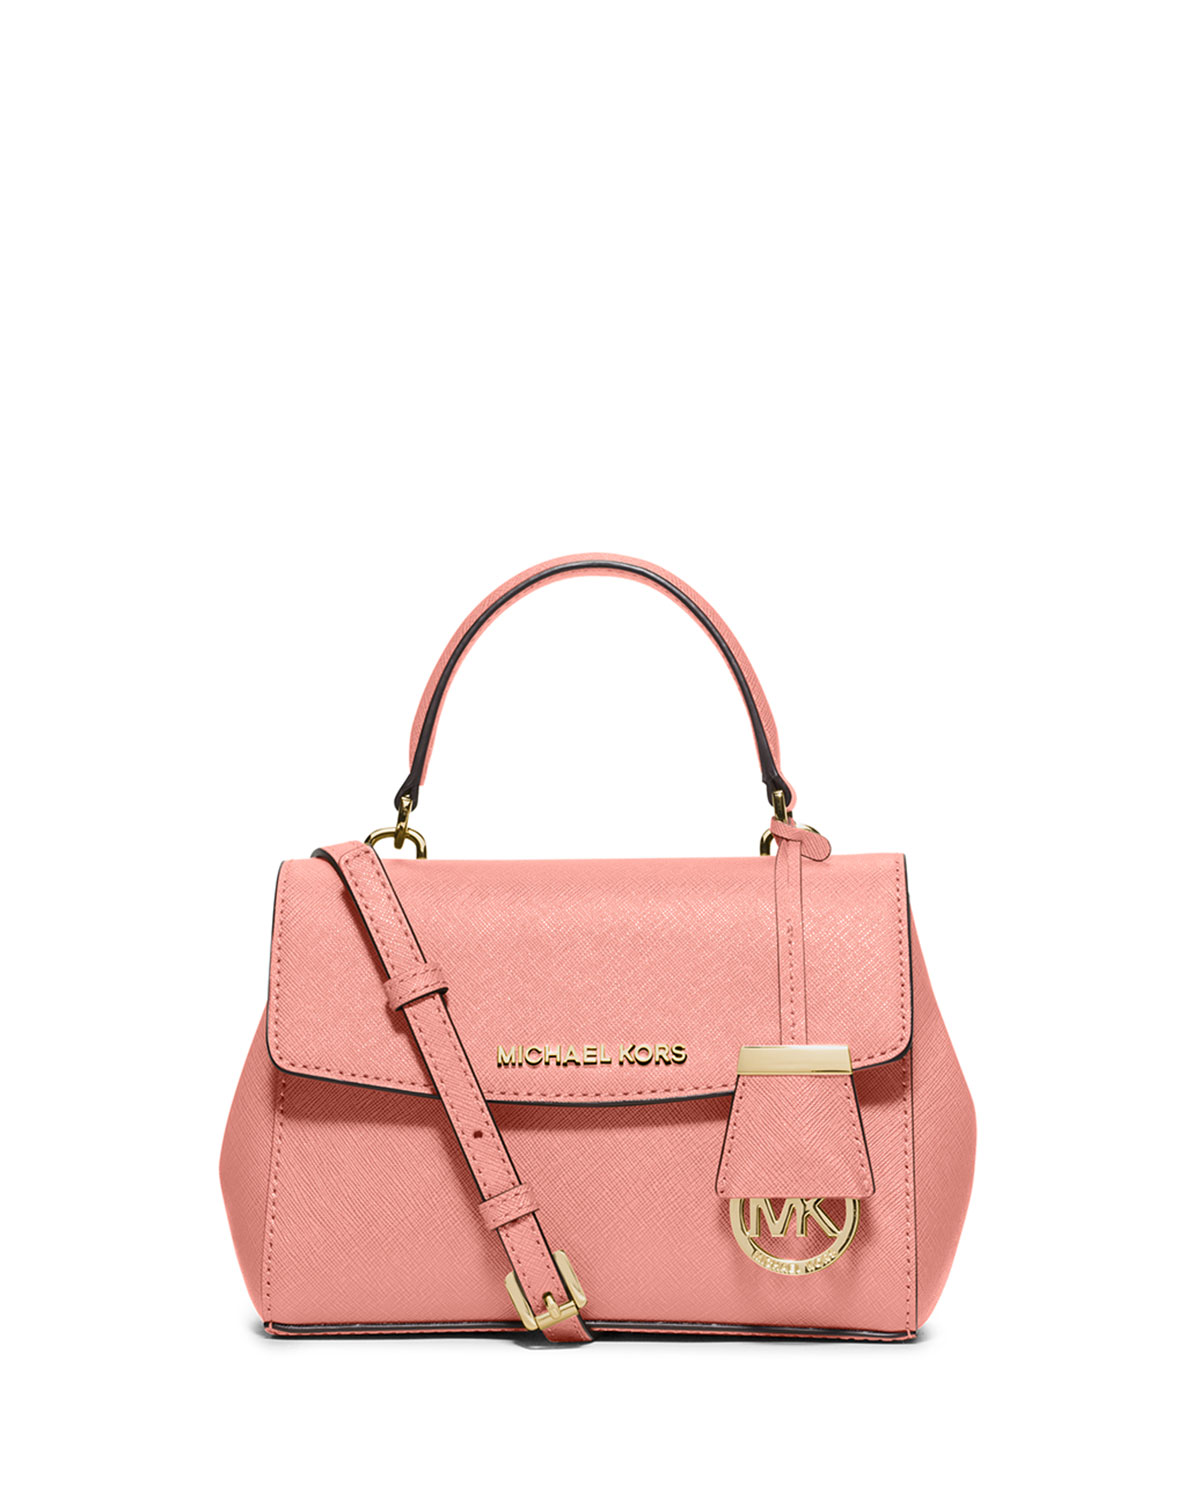 2e8a8ff28aac MICHAEL Michael Kors Ava Extra-Small Saffiano Leather Satchel Bag, Pale Pink